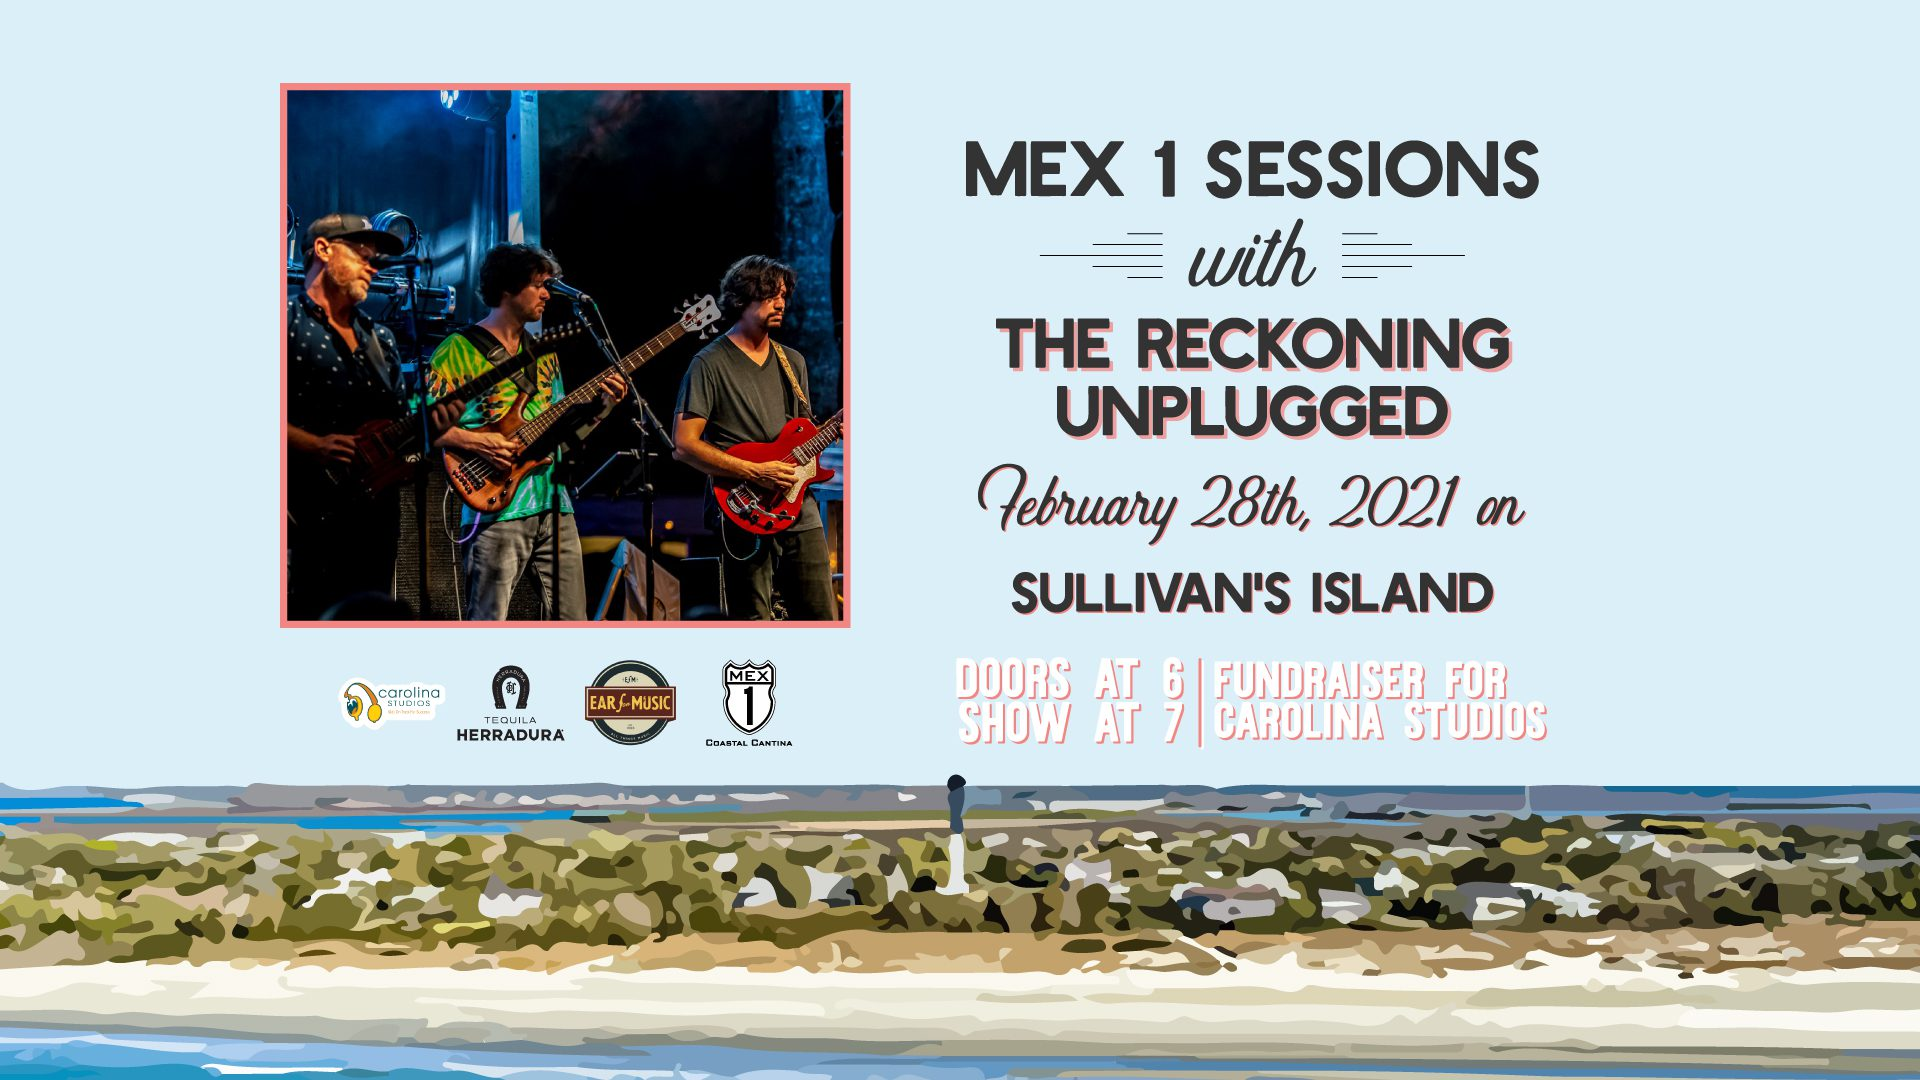 Mex 1 Sessions with the Reckoning Unplugged Sunday, February 28th